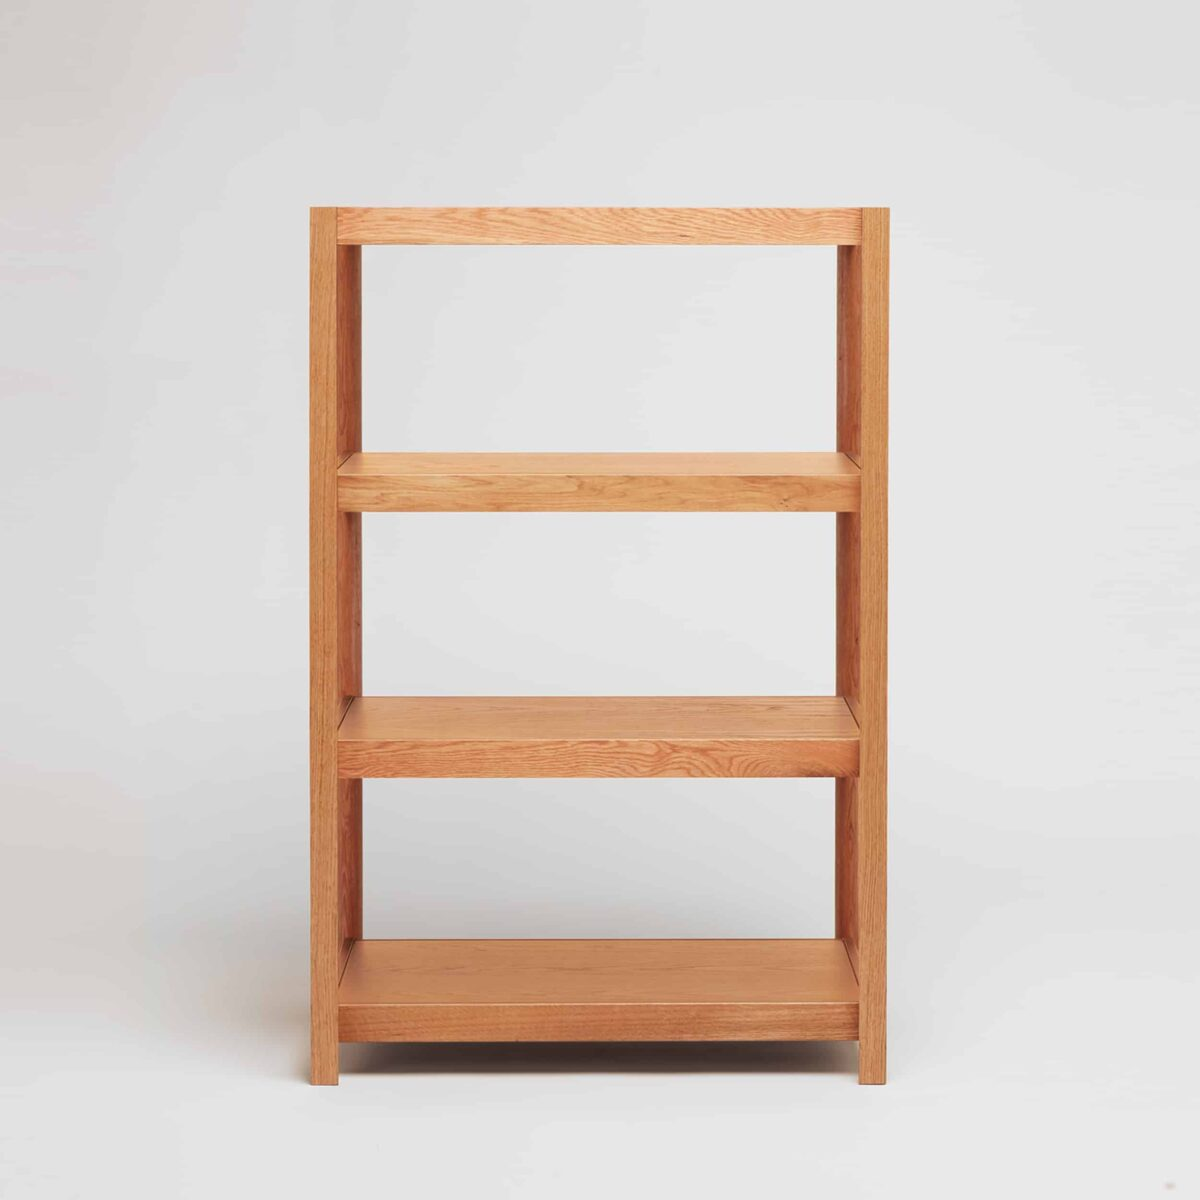 Fram Medium Oak Shelving